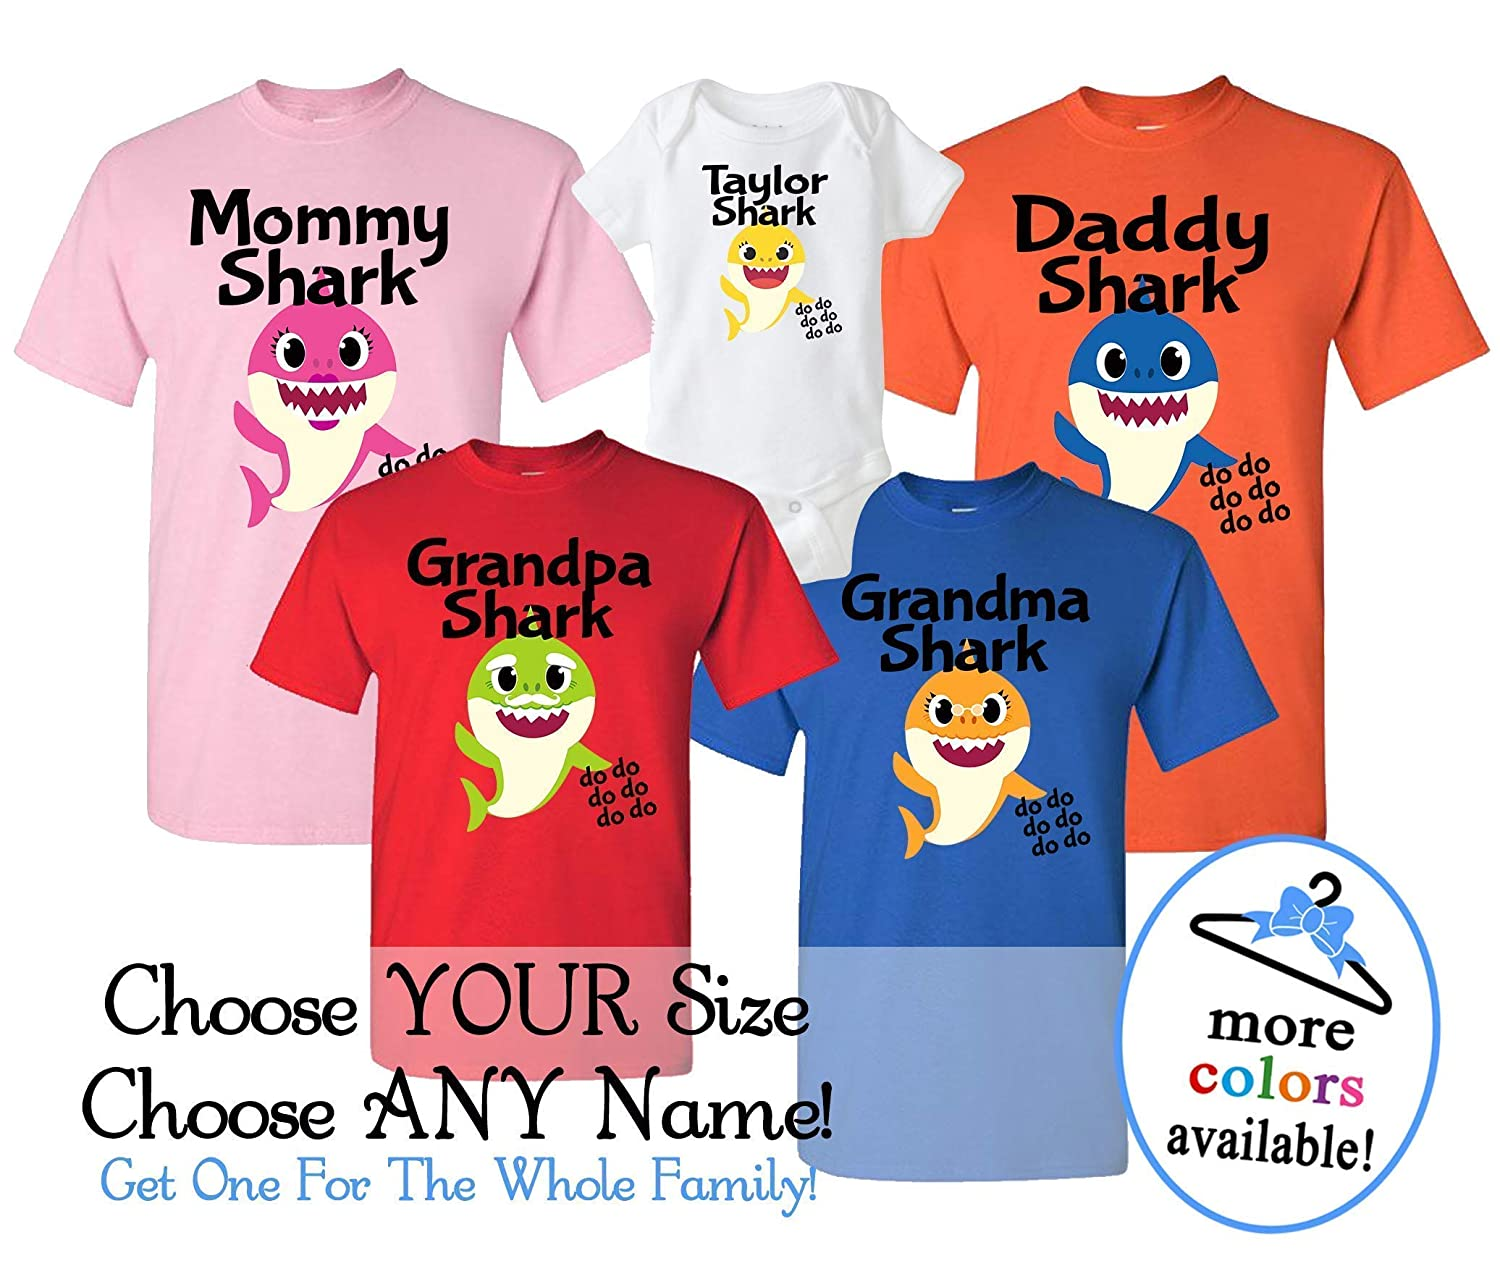 I Love My Grandma This Much Personalized Name Toddler//Kids Short Sleeve T-Shirt Little Boy